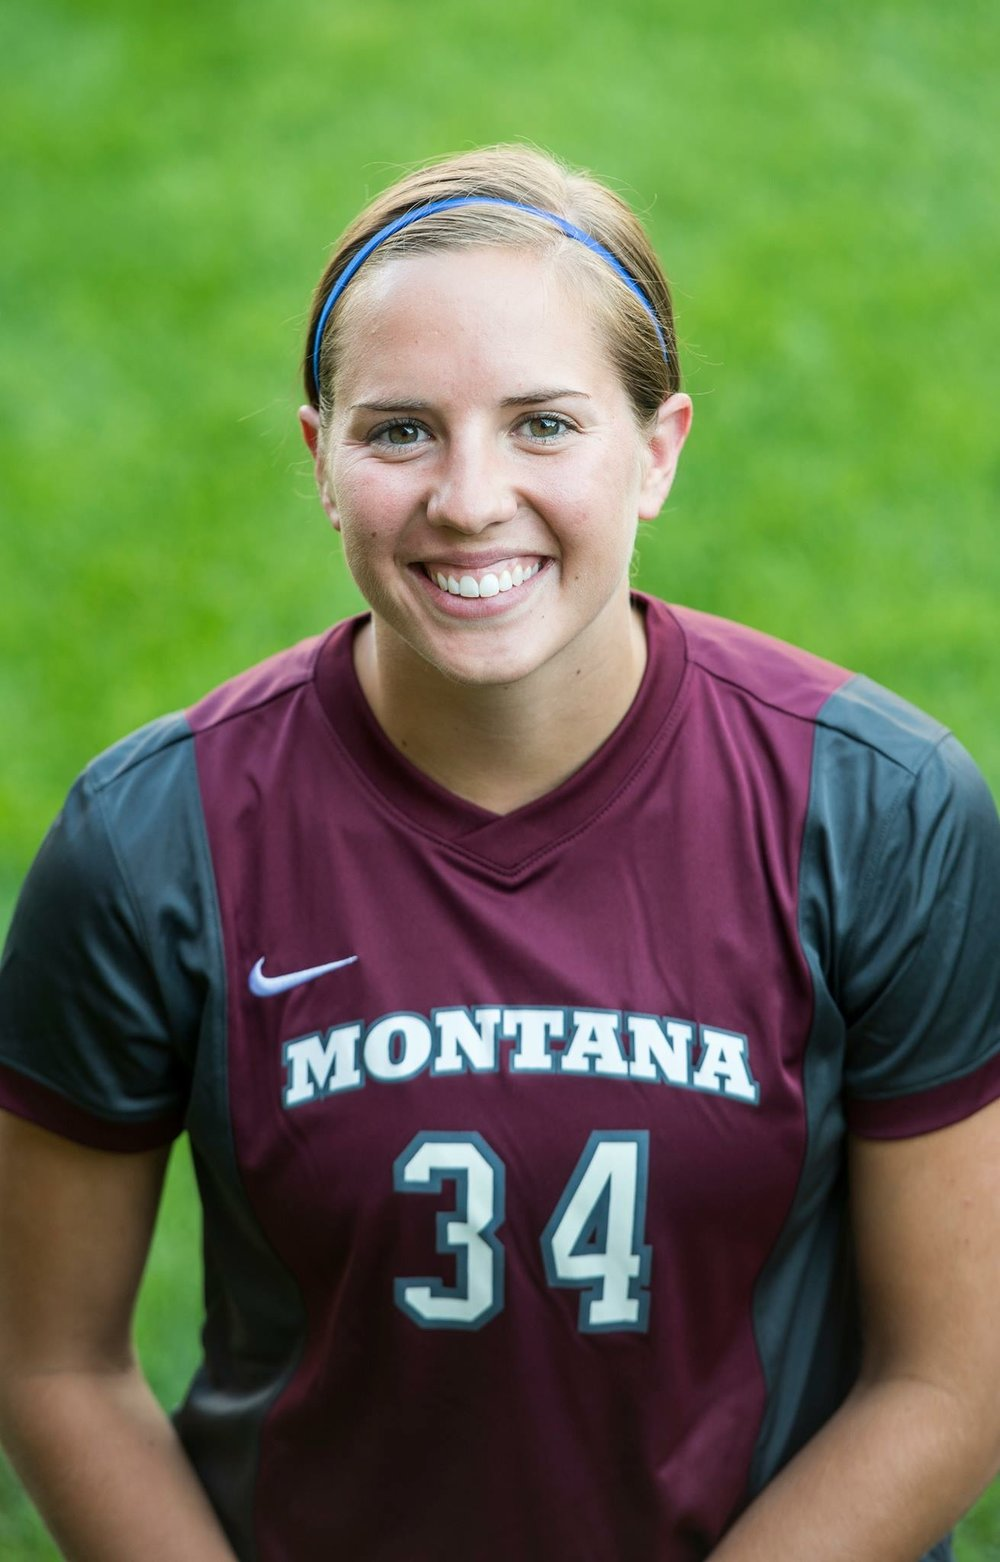 Tess Brenneman - Hi FAM! I am from Kalispell, Montana and was a multi-sport athlete at Flathead High School. I went on to play soccer and also pursued a short lived track career at the University of Montana. I am currently living and working for a year in Ukraine with an organization called Mennonite Central Committee. I work in a local organization here that works with families who are marginalized, in crisis, or economically disadvantaged. I love simply spending time with people and having the opportunity every day to grow God's family here on earth.